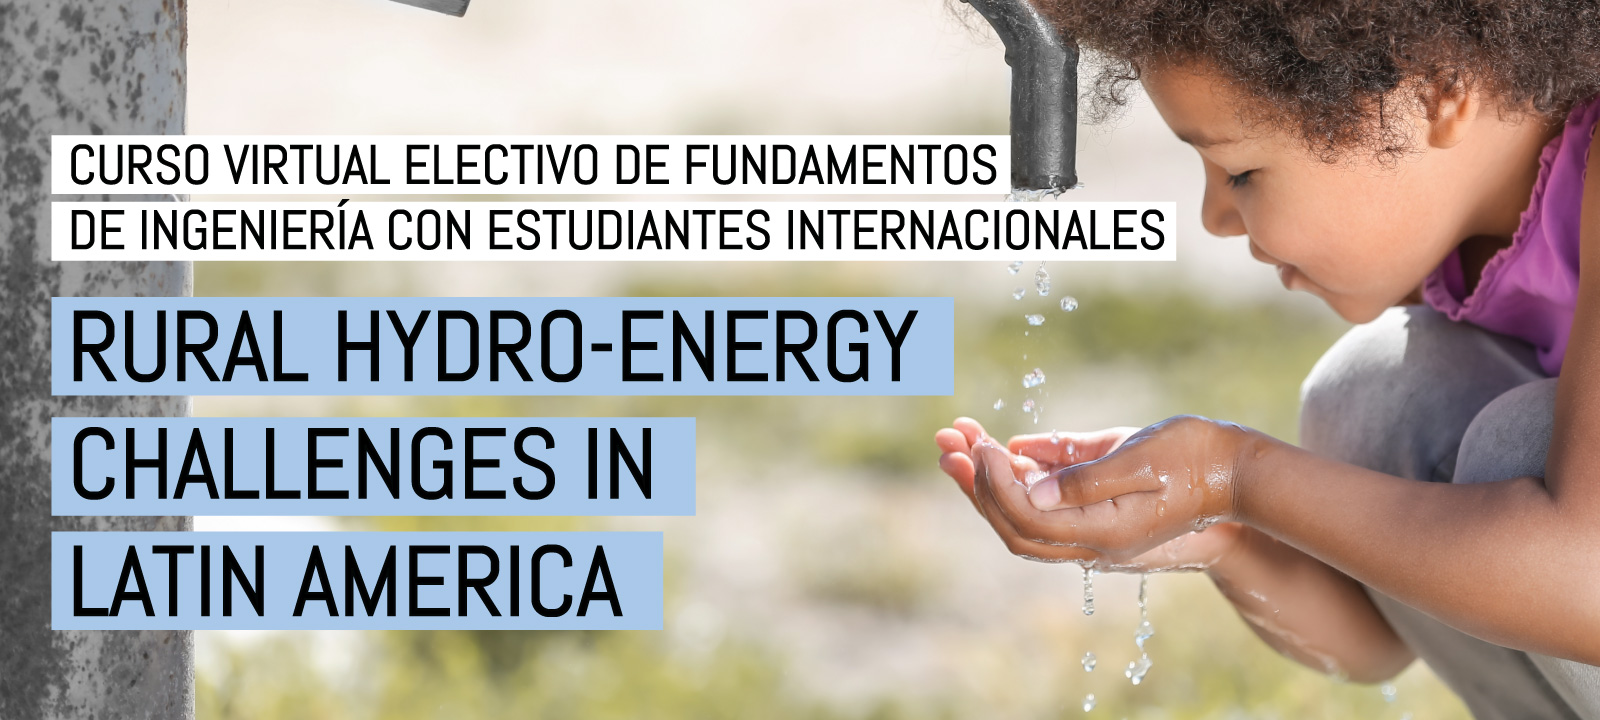 Curso virtual   Rural Hydro-Energy Challenges in Latin America